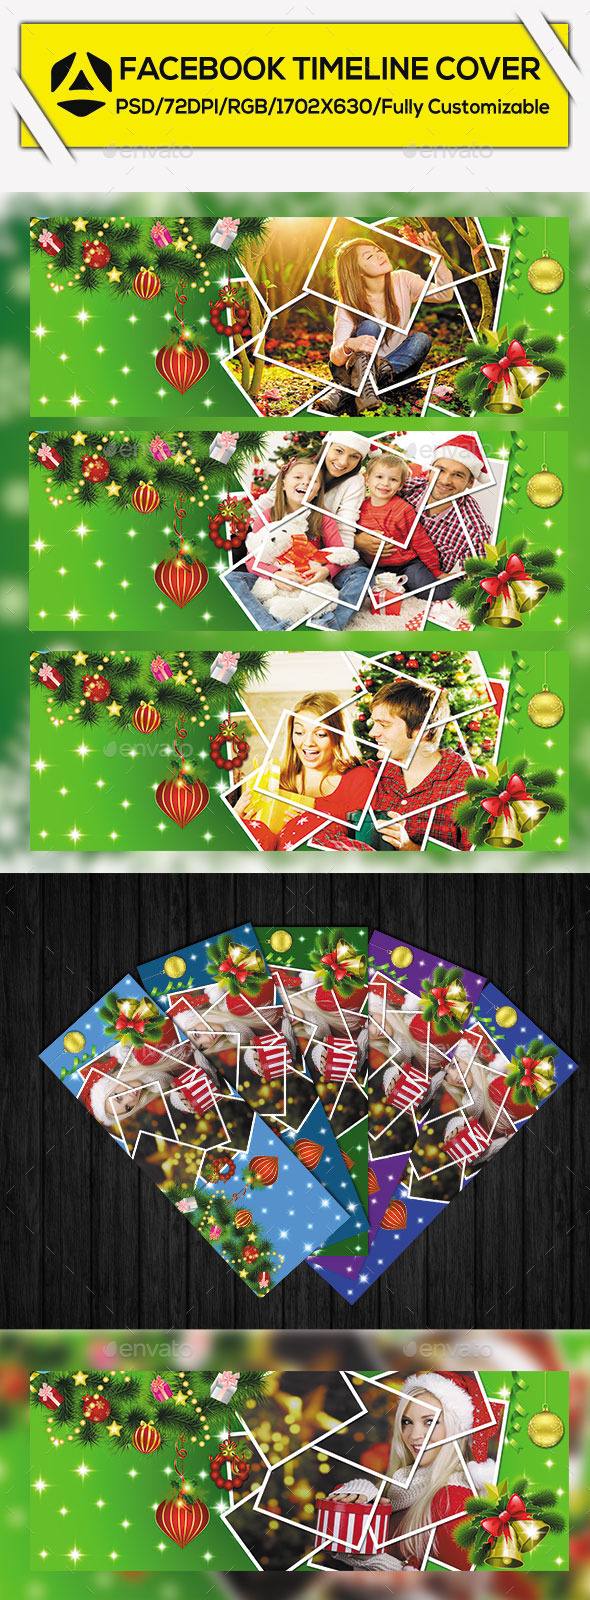 GraphicRiver Christmas Facebook Timeline Cover Vol 2 9773864